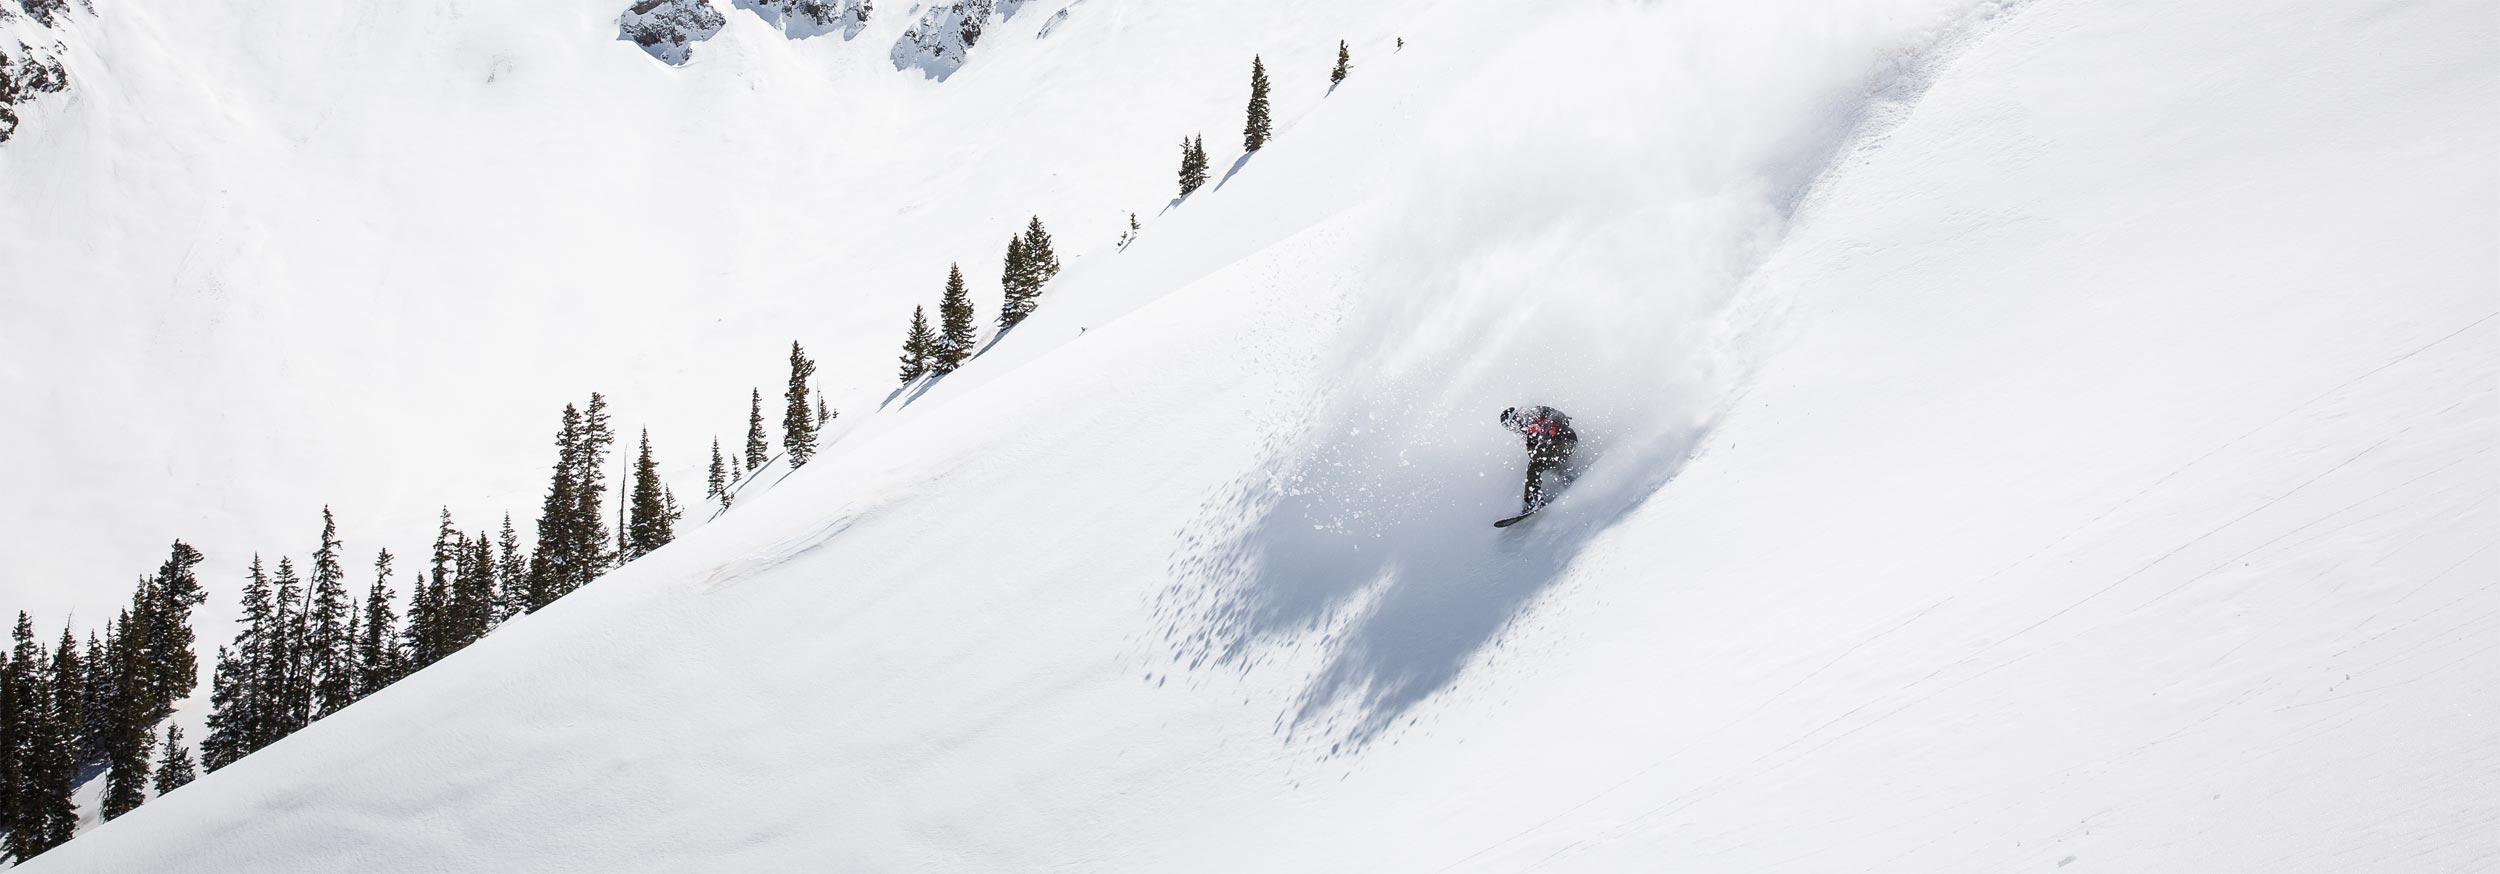 A snowboarder makes a turn in powder which exploads in a cloud around him at Silverton Mountain, Colorado